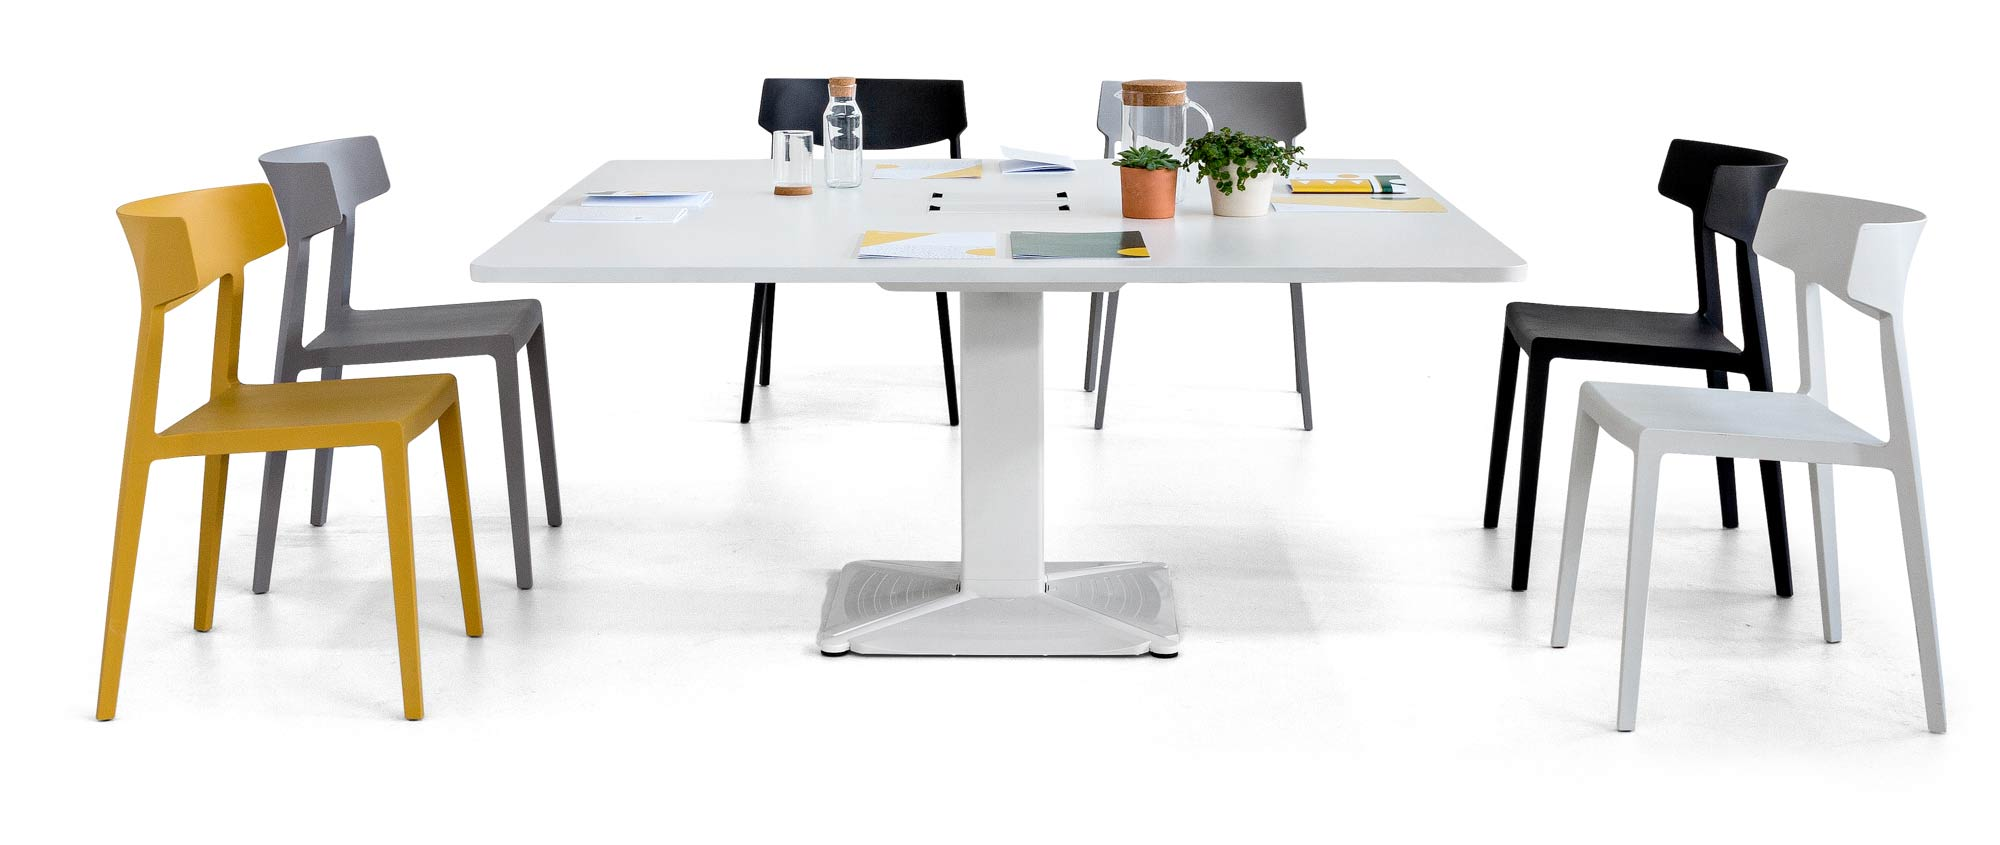 desk power meeting conference tables support swing chair white black yellow comfort technology design organization adjustable versatile workplace quality excellence masof actiu